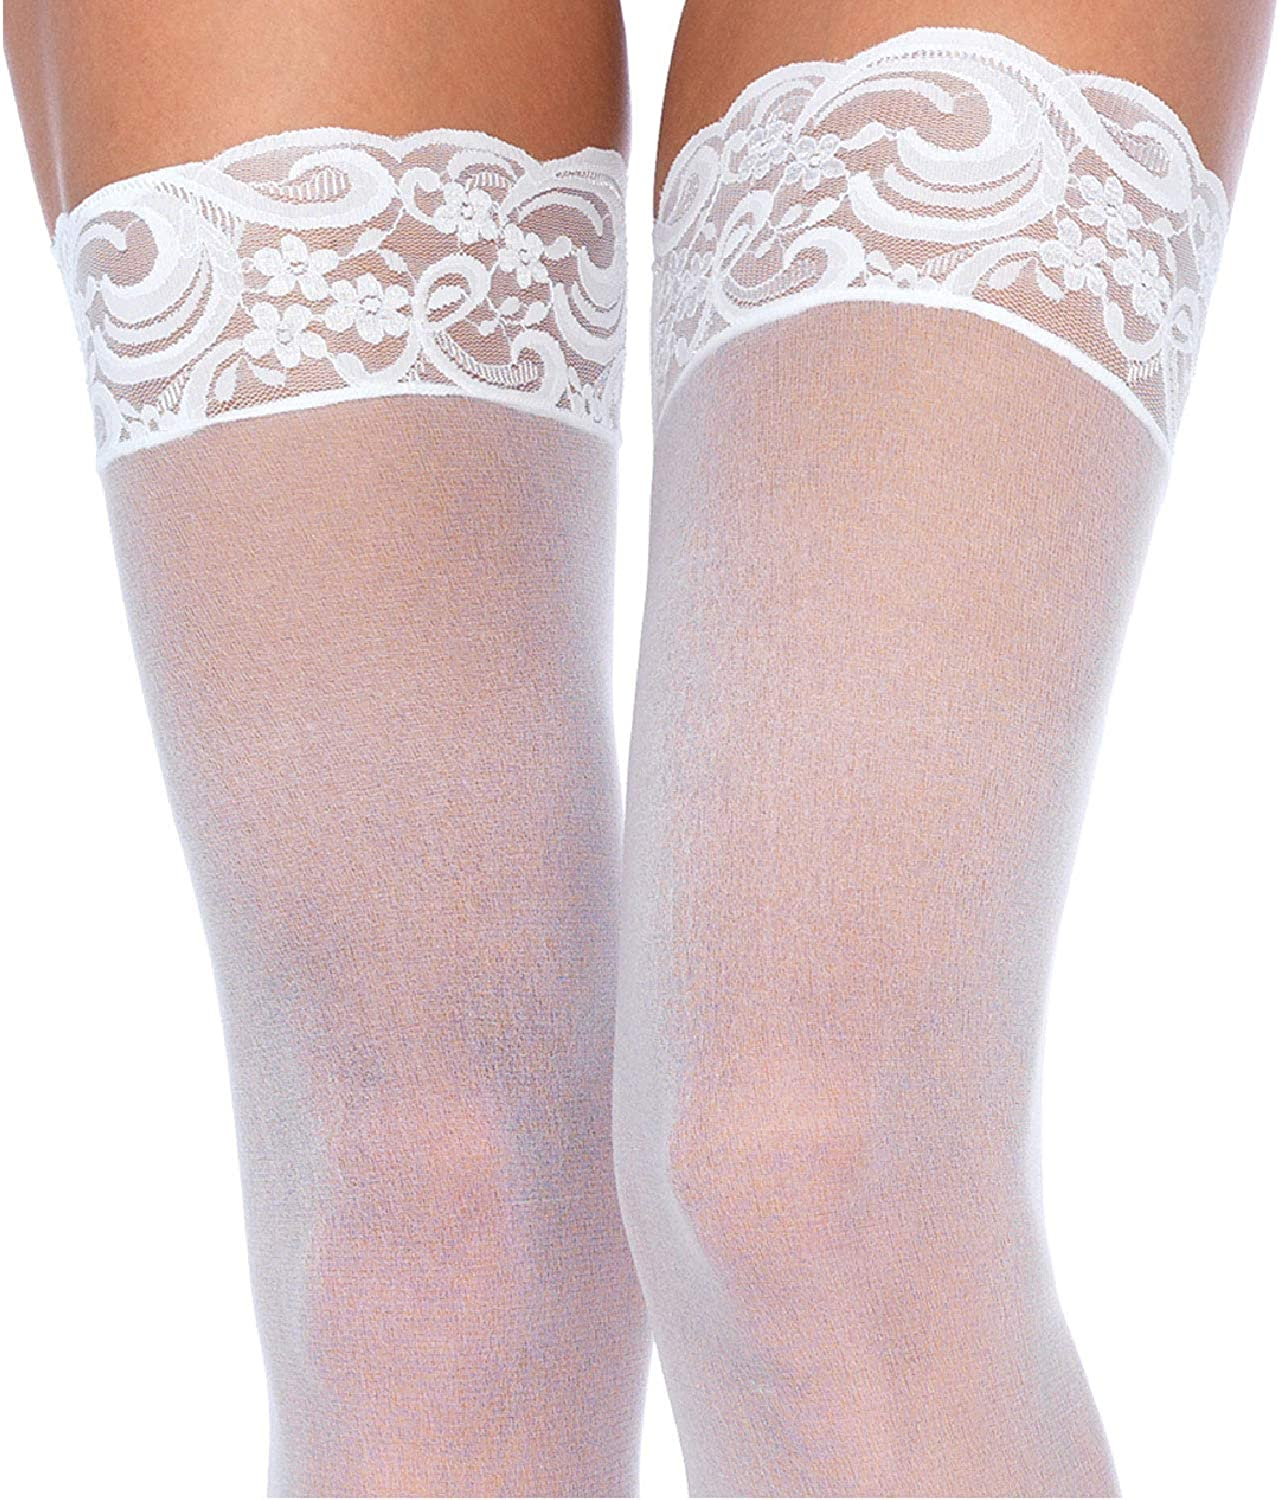 Nylon Sheer Thigh High With Lace Top: Clothing